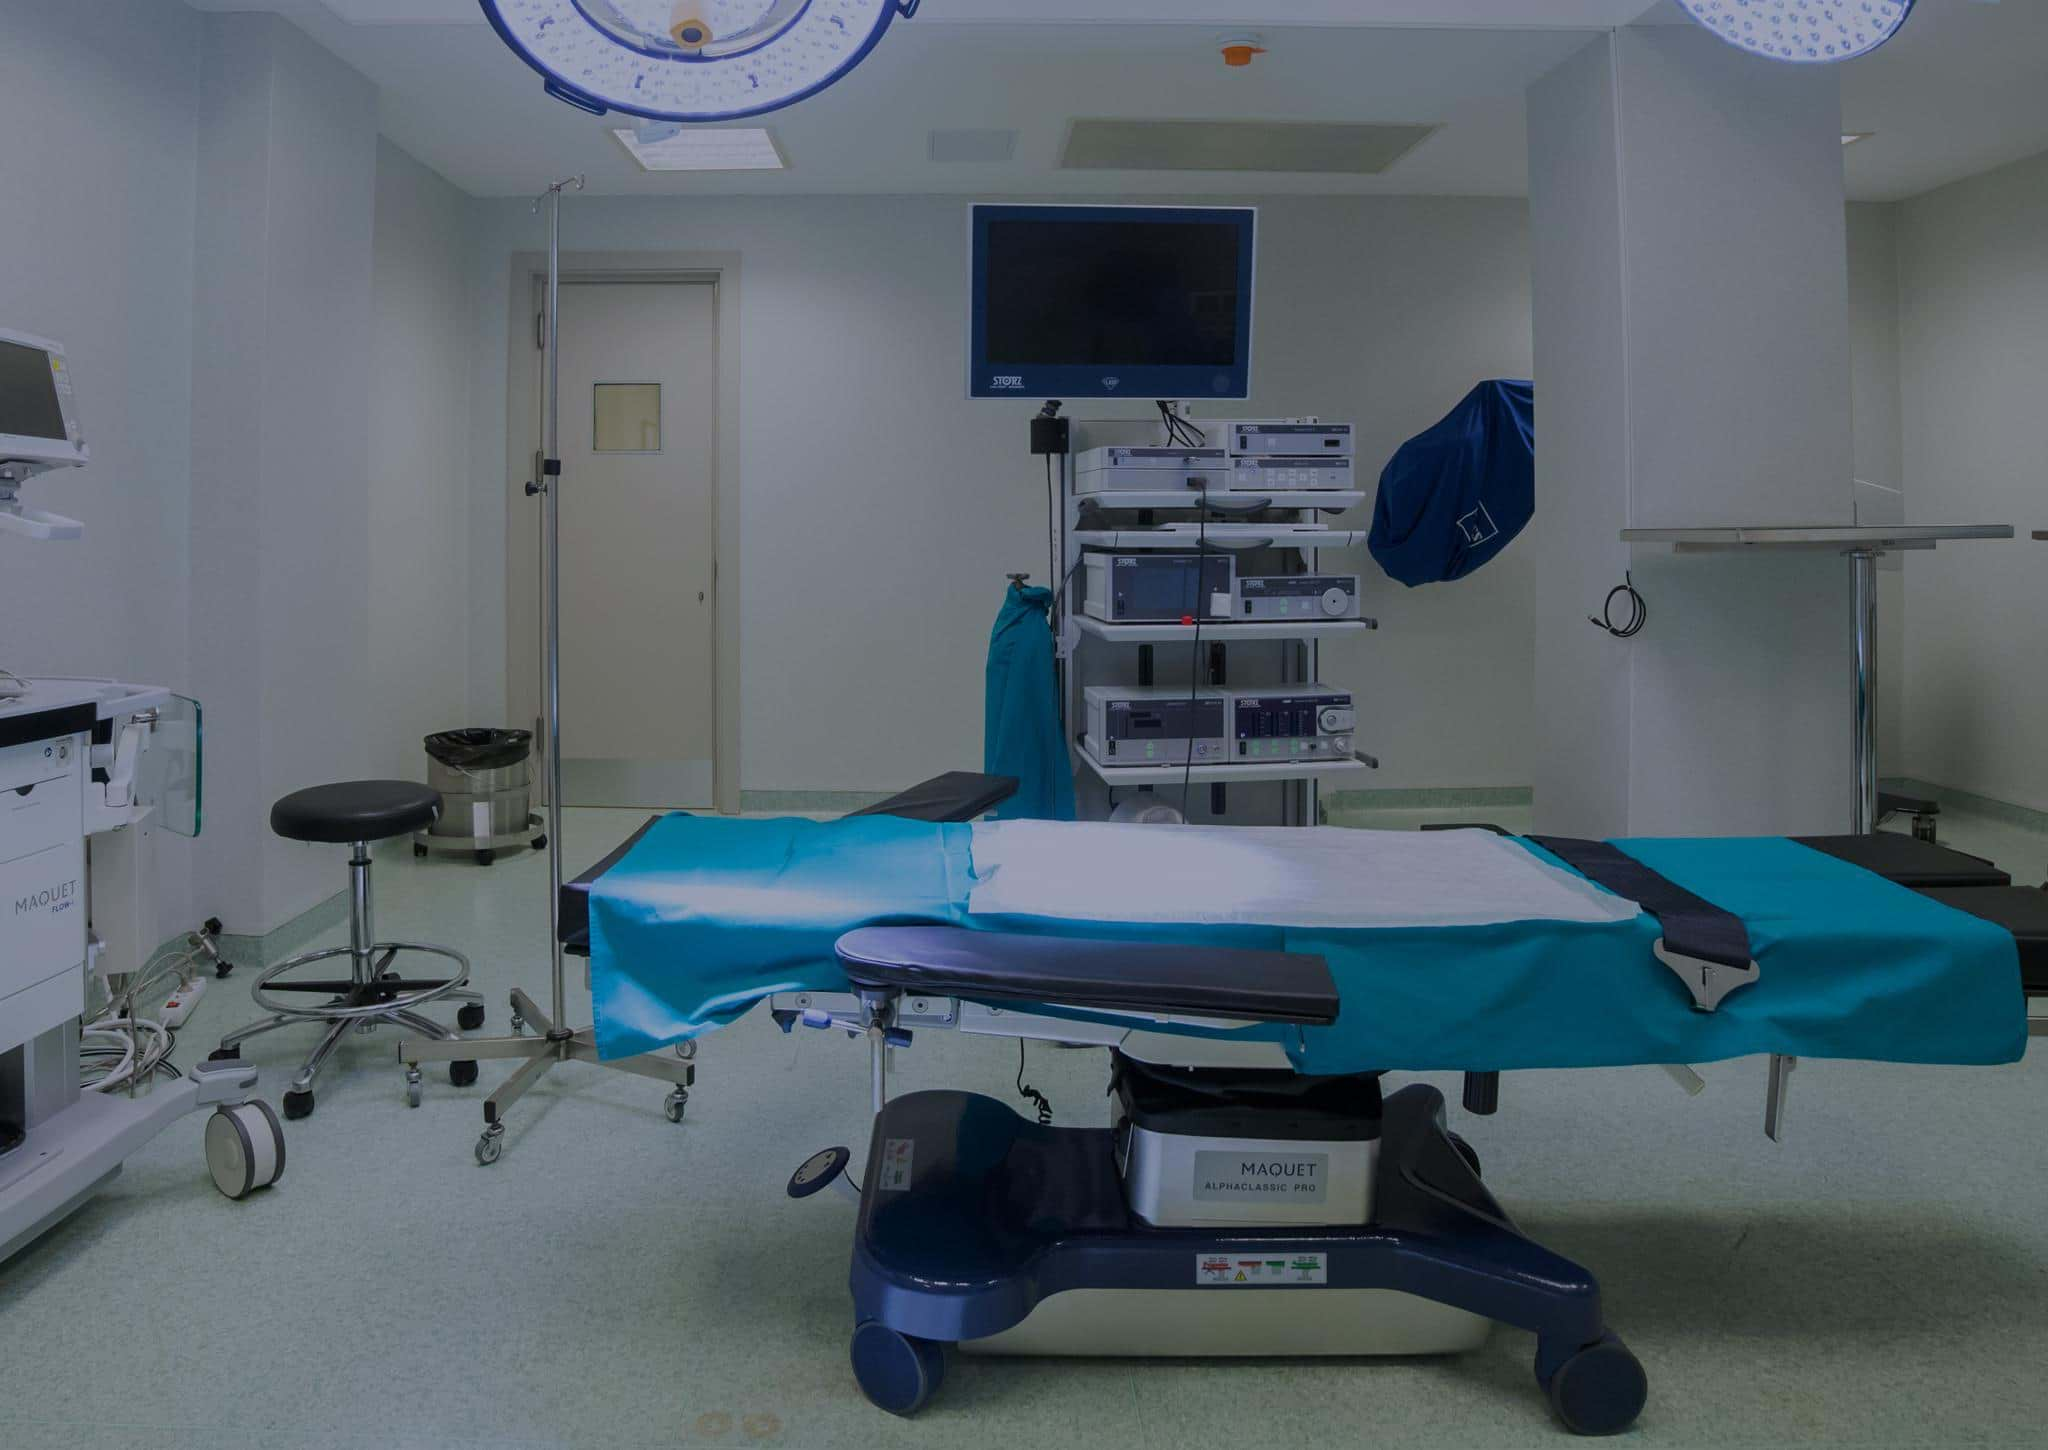 Broad range of general surgical conditions treated